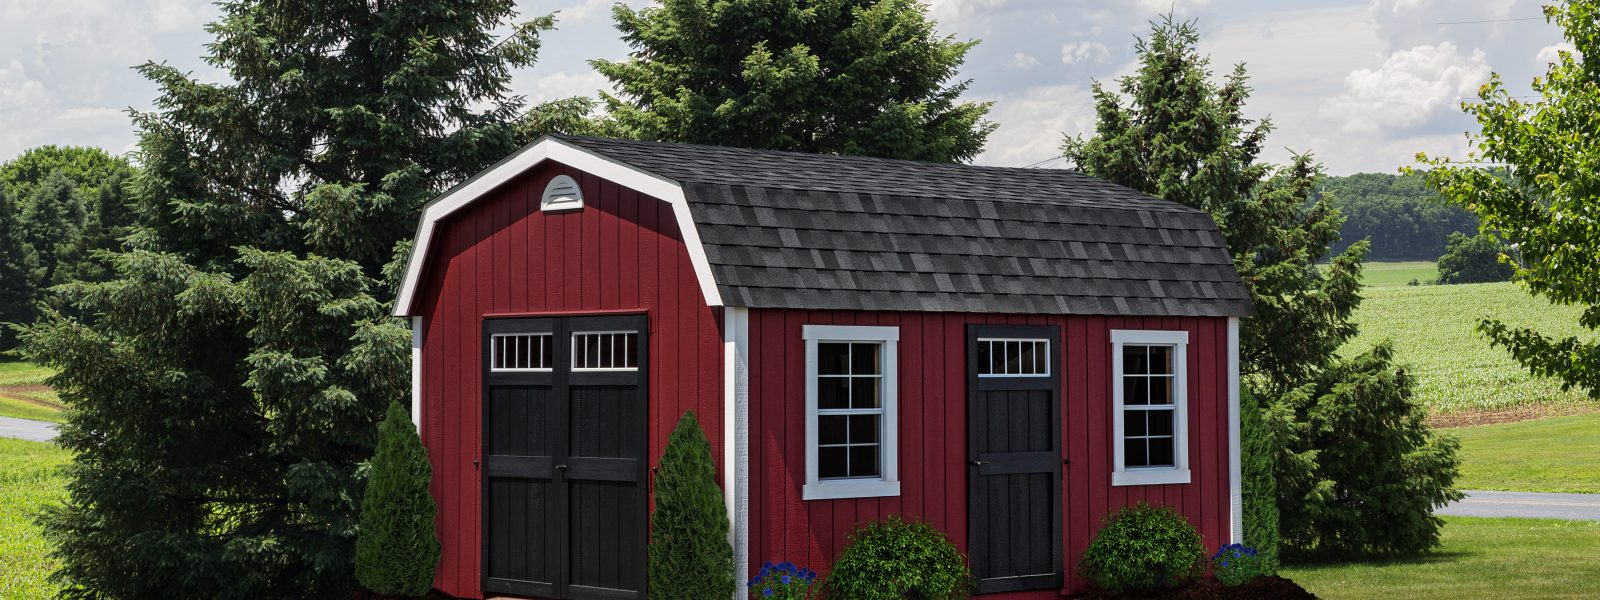 sheds for sale in minneapolis mn